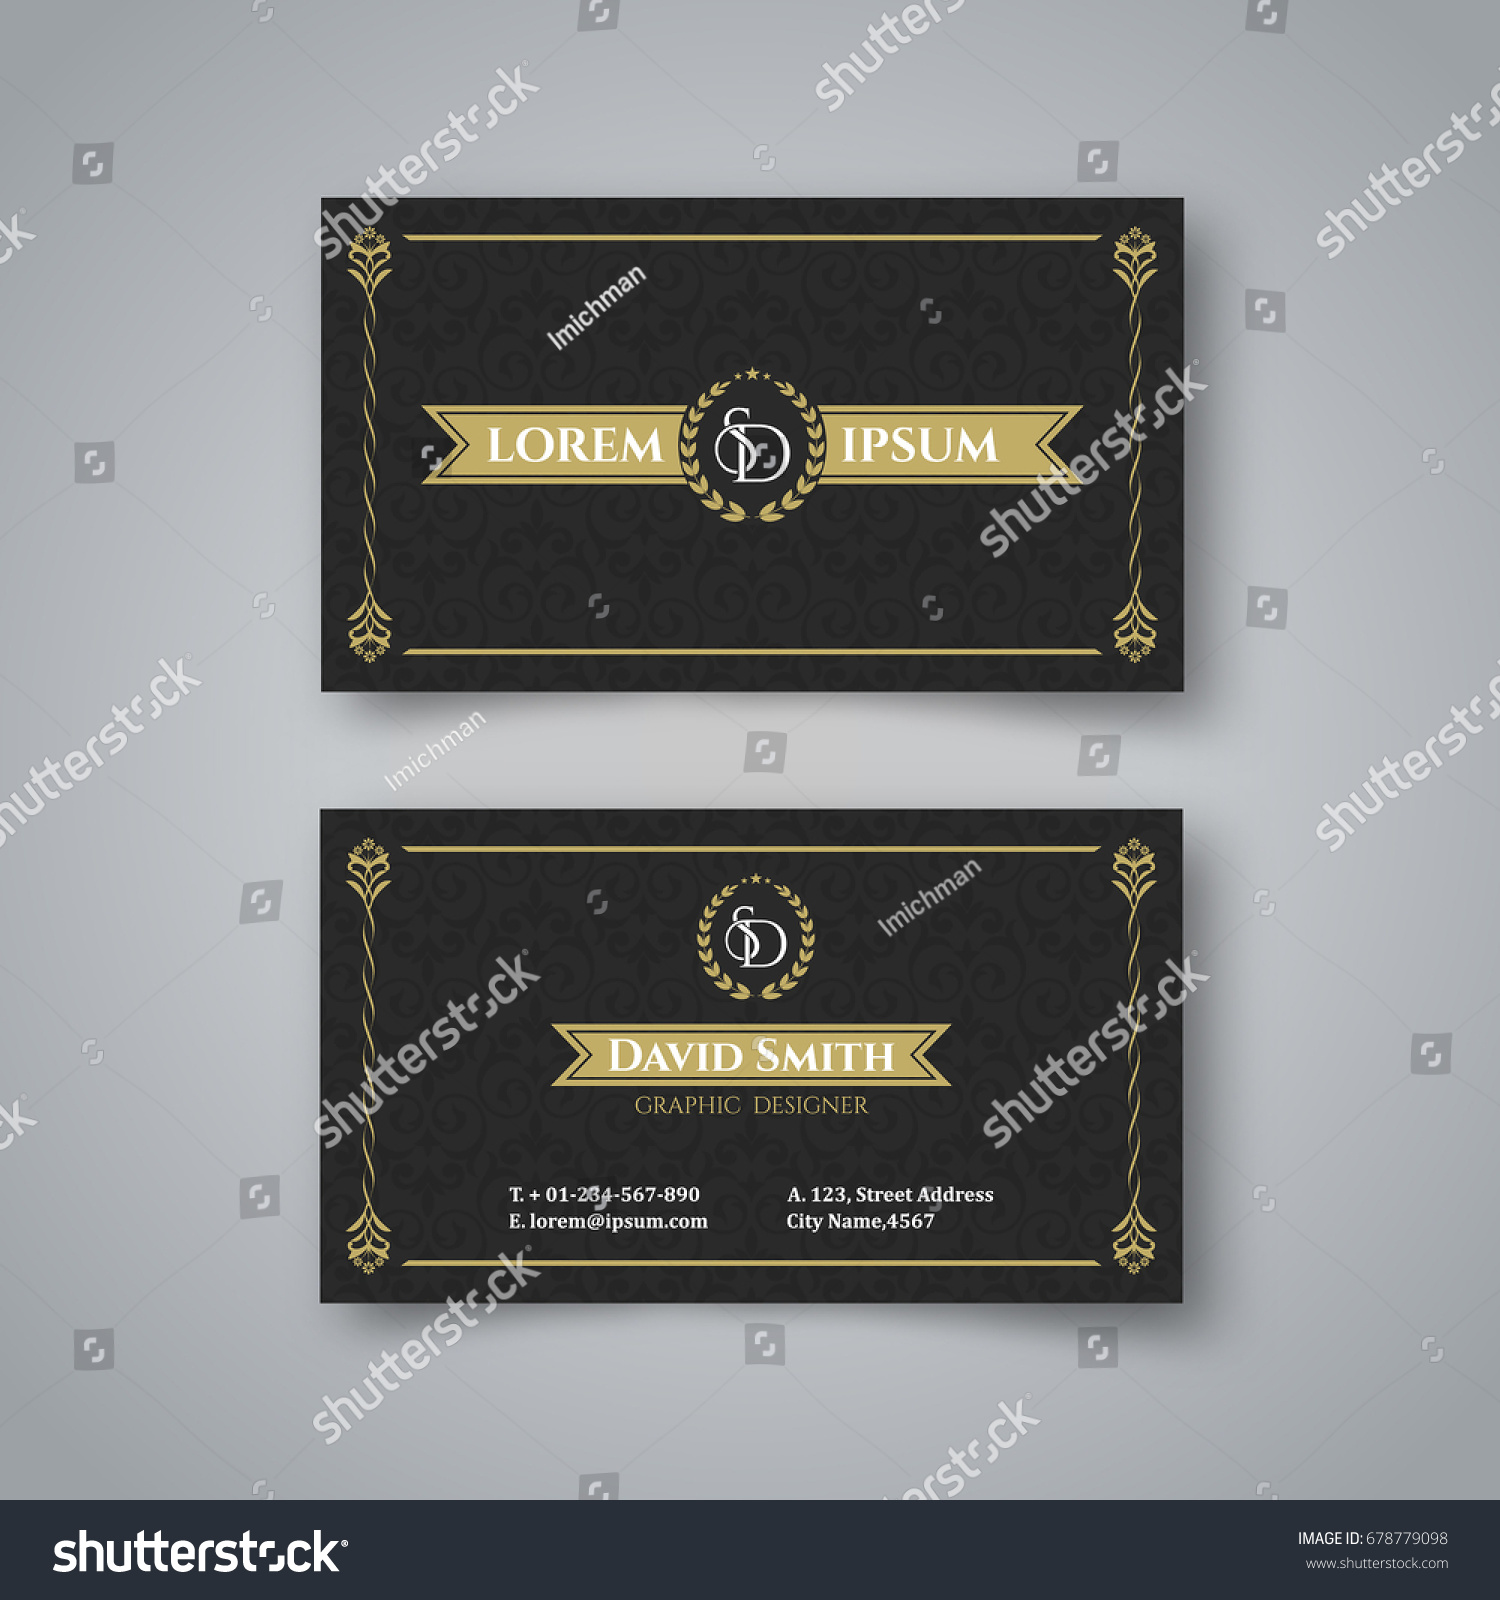 Template Blank Vintage Business Card On Stock Vector 678779098 ...